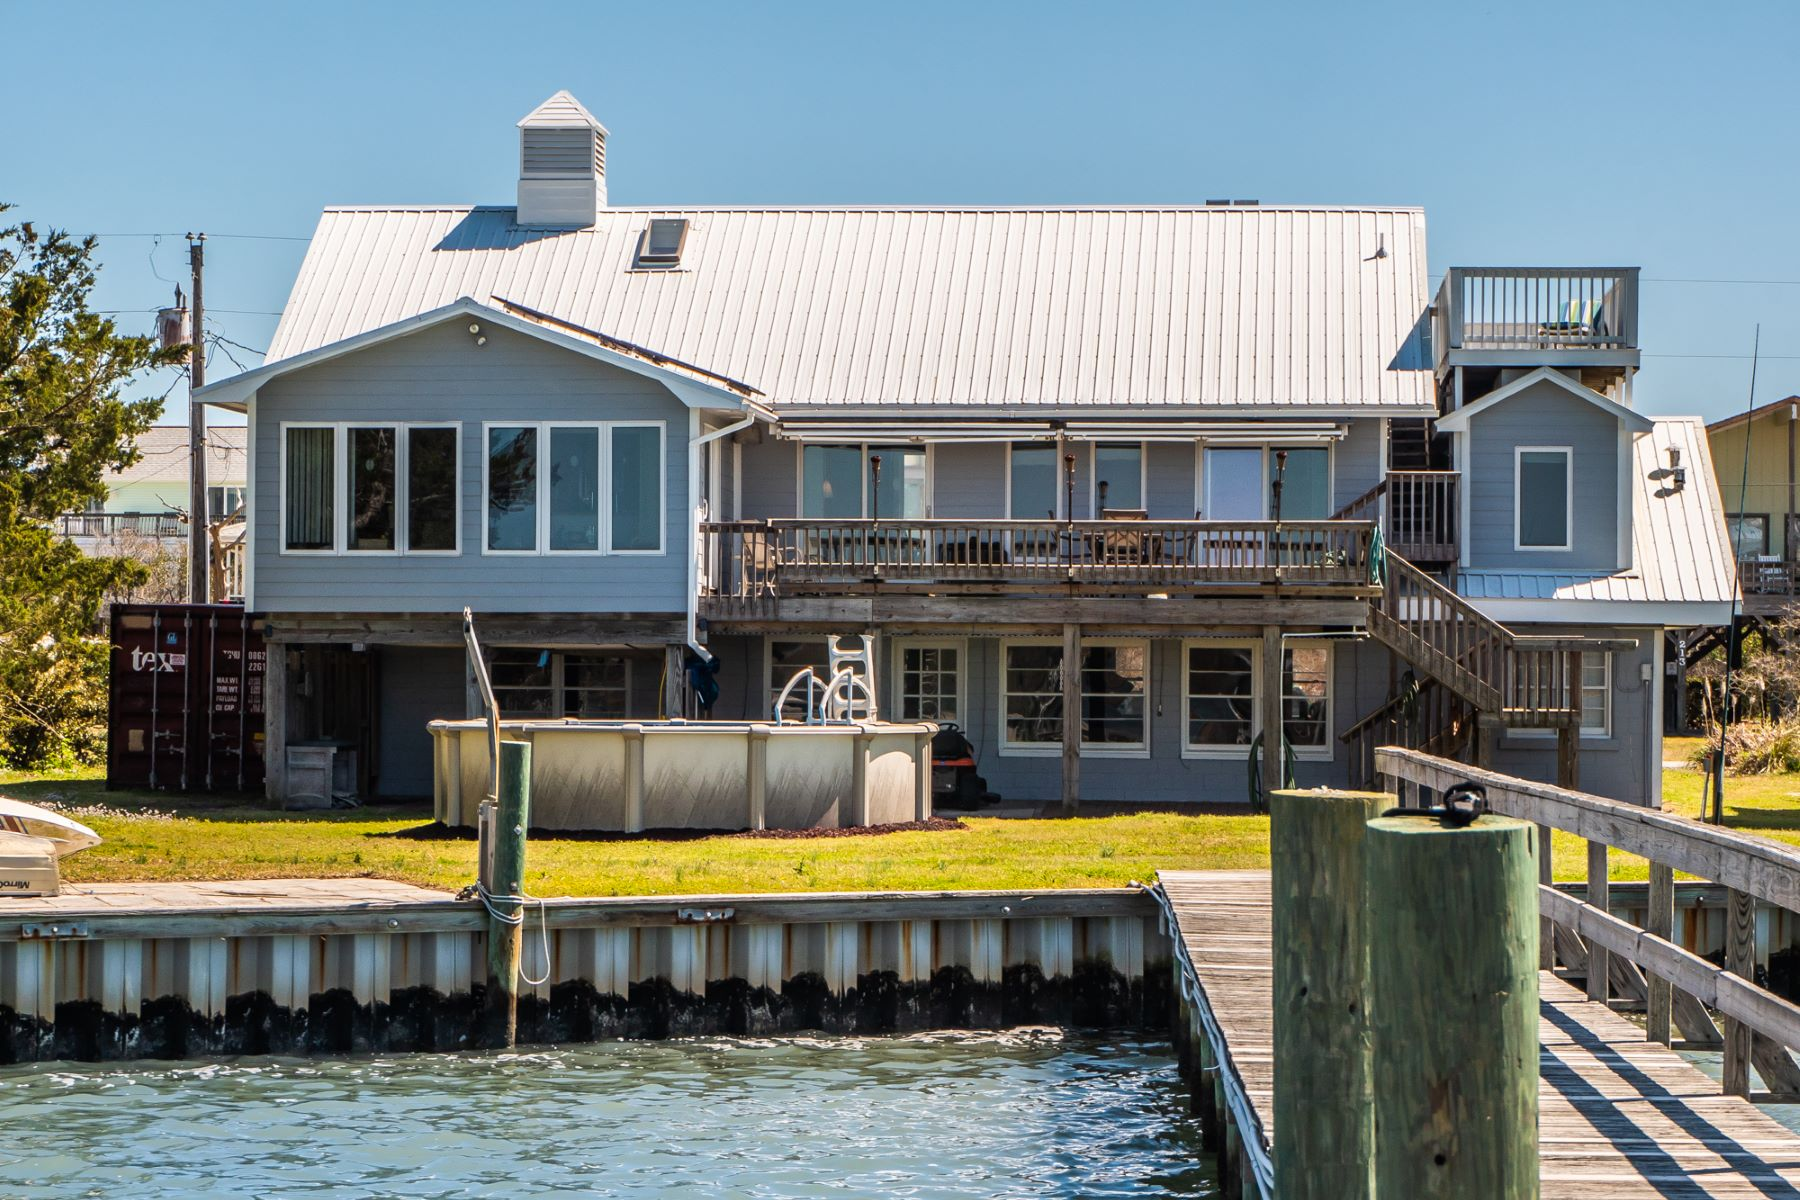 Single Family Homes for Sale at Soundfront Home with Deep Water Pier 212 Bridgers Ave Topsail Beach, North Carolina 28445 United States